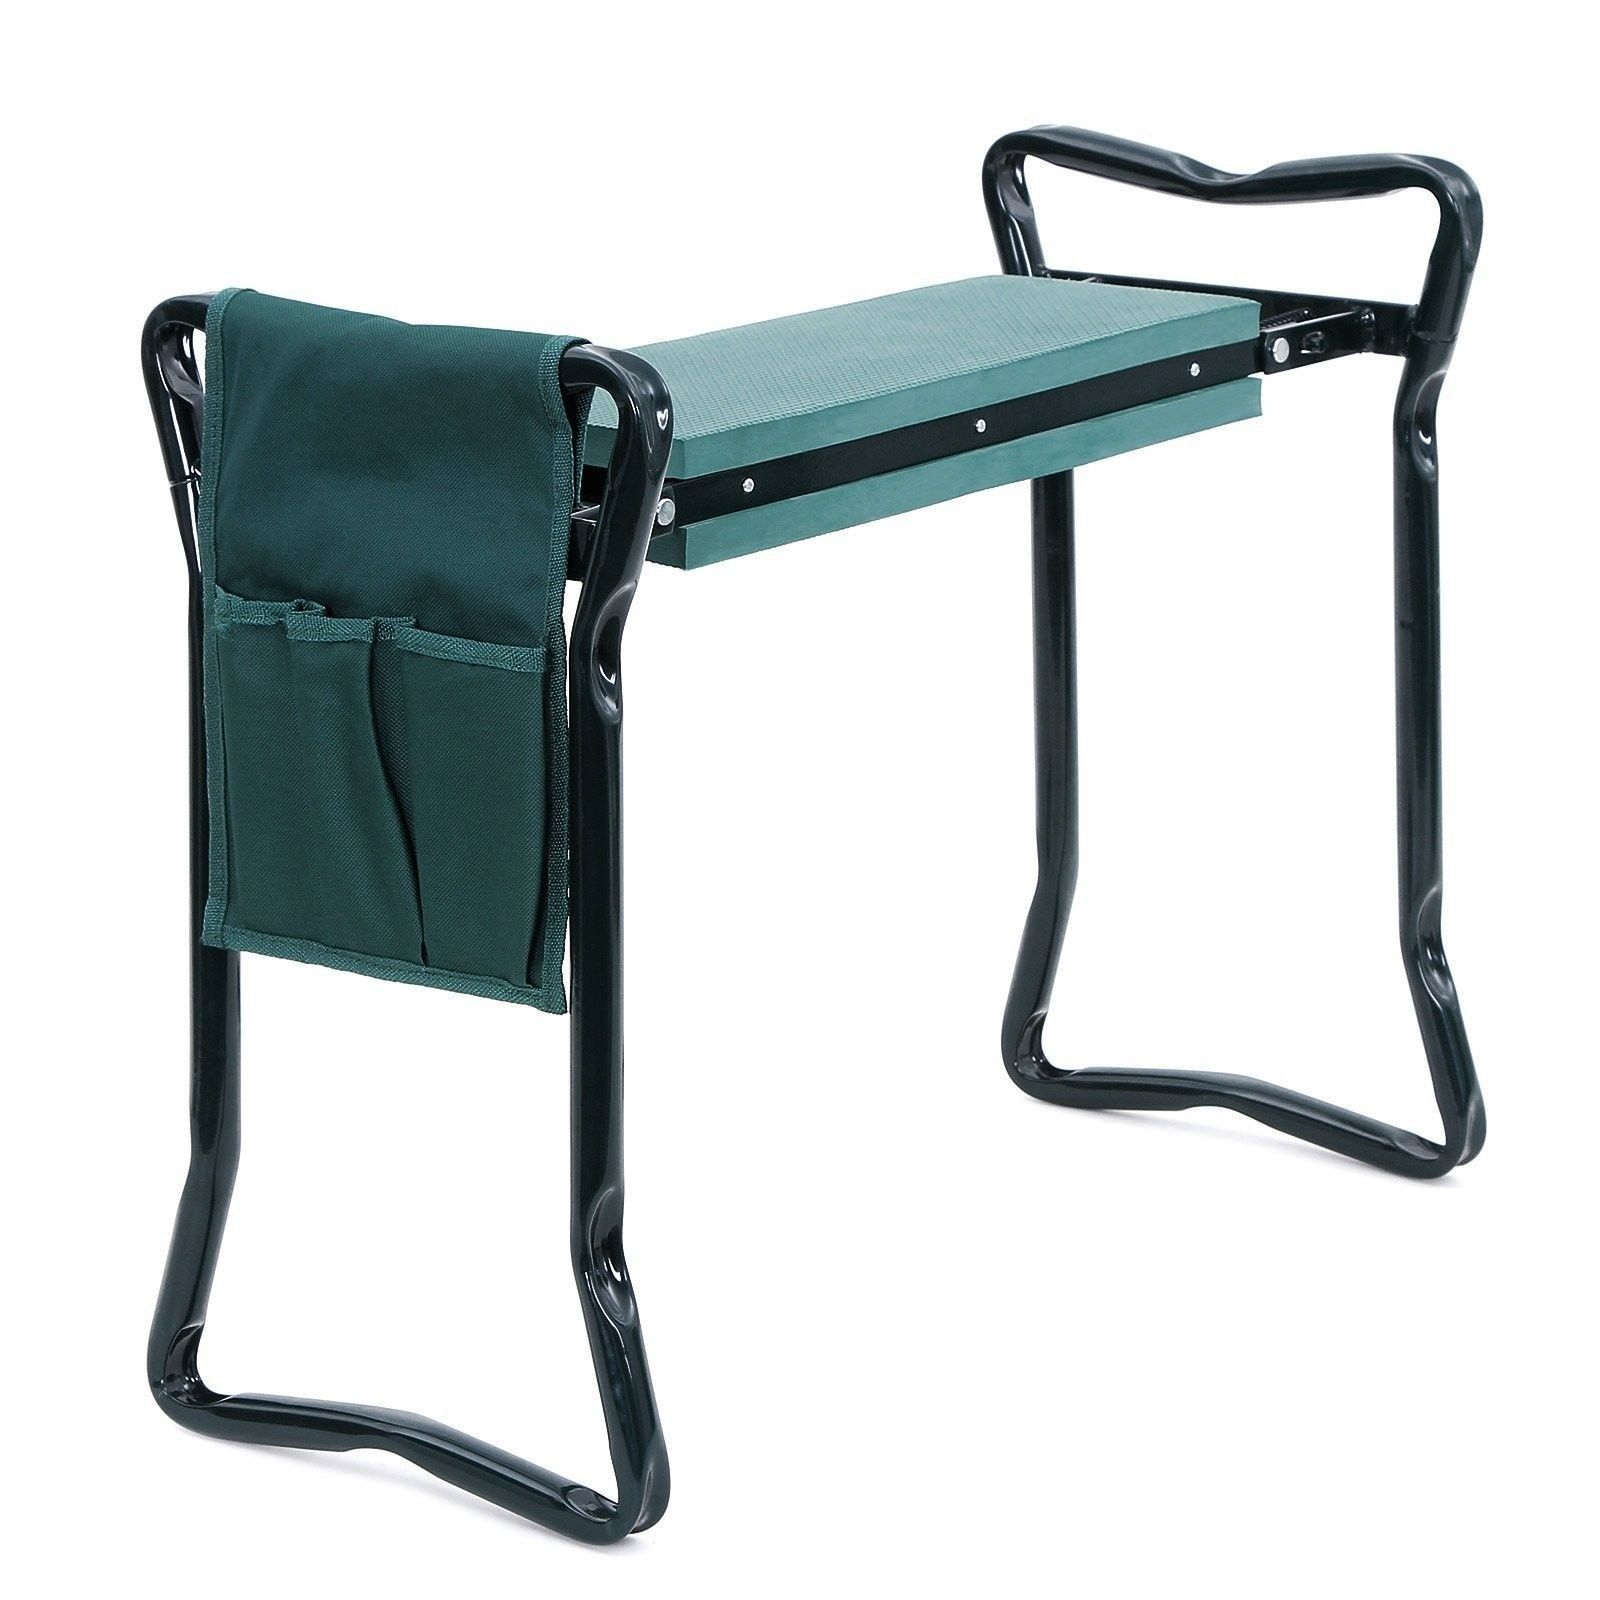 accessories tool pcs a lawn bag garden tools with gardening home seats kneelers gift scooters steel stool stainless folding set